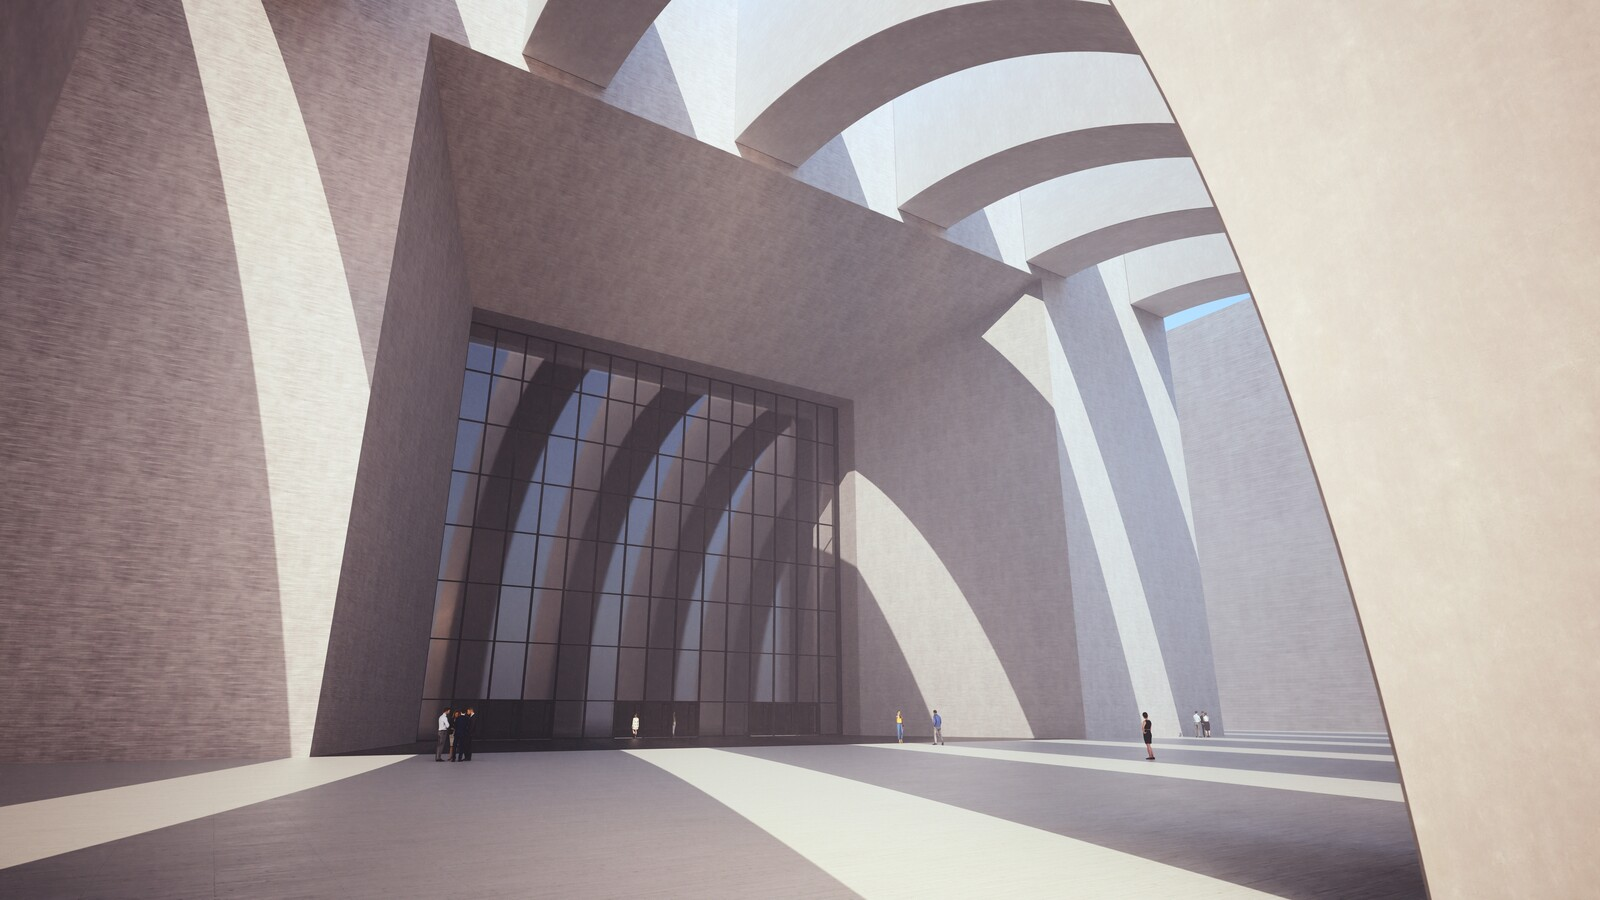 SketchUp 2019 + Thea Render  Large Hall Main Entry_SU8 2018-Scene 7 no pillars Emitter 3840x2160 43m48s 1024 sp 02